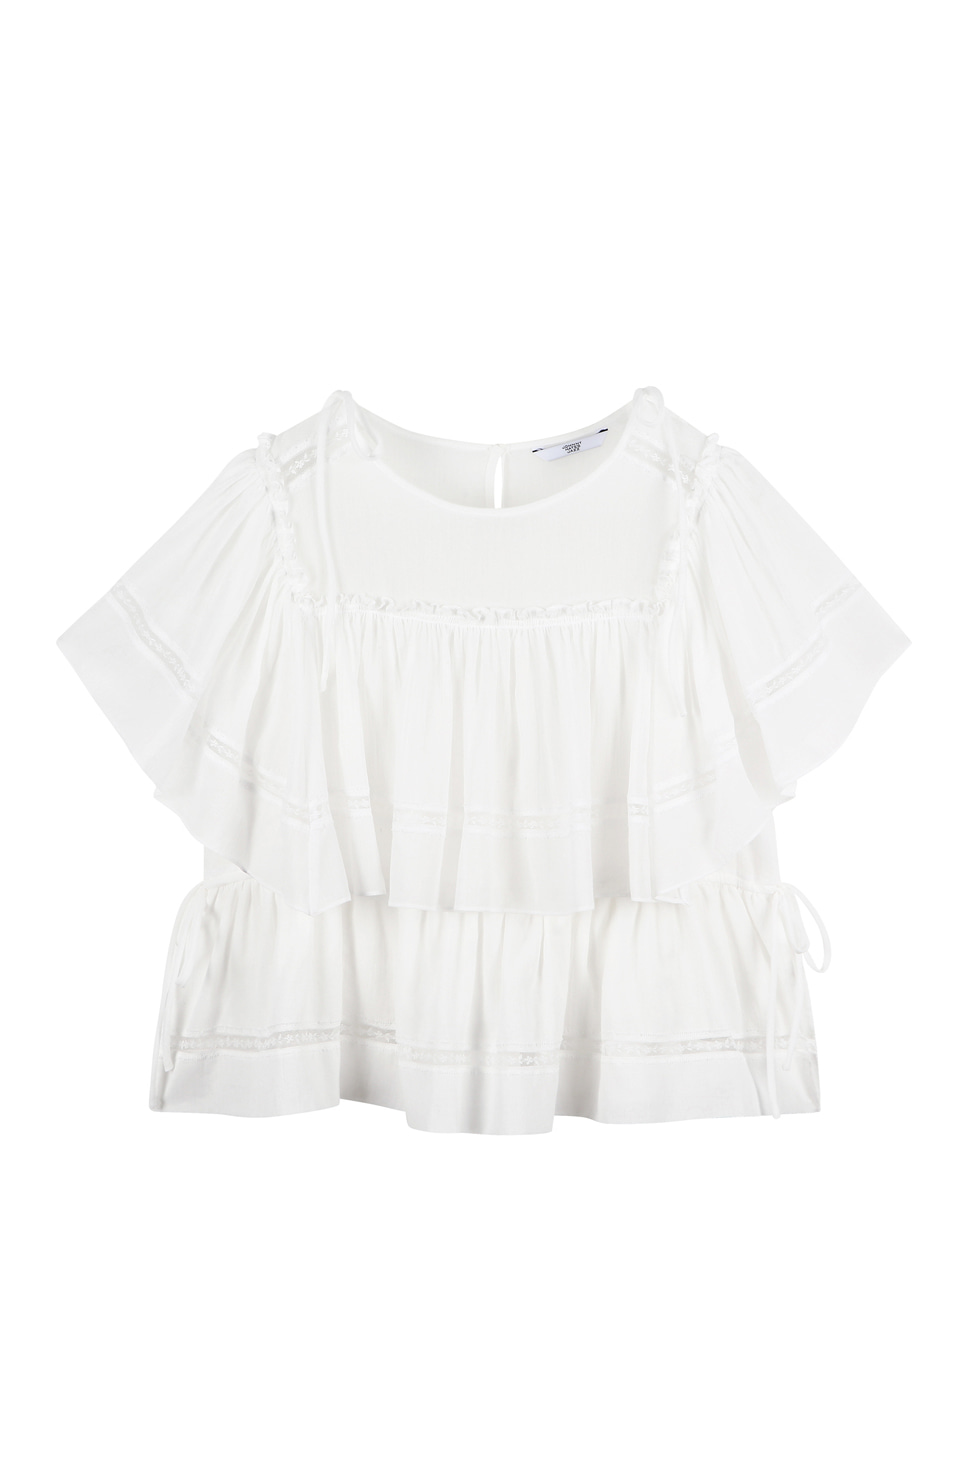 COTTON LACE BLOUSE - WHITE